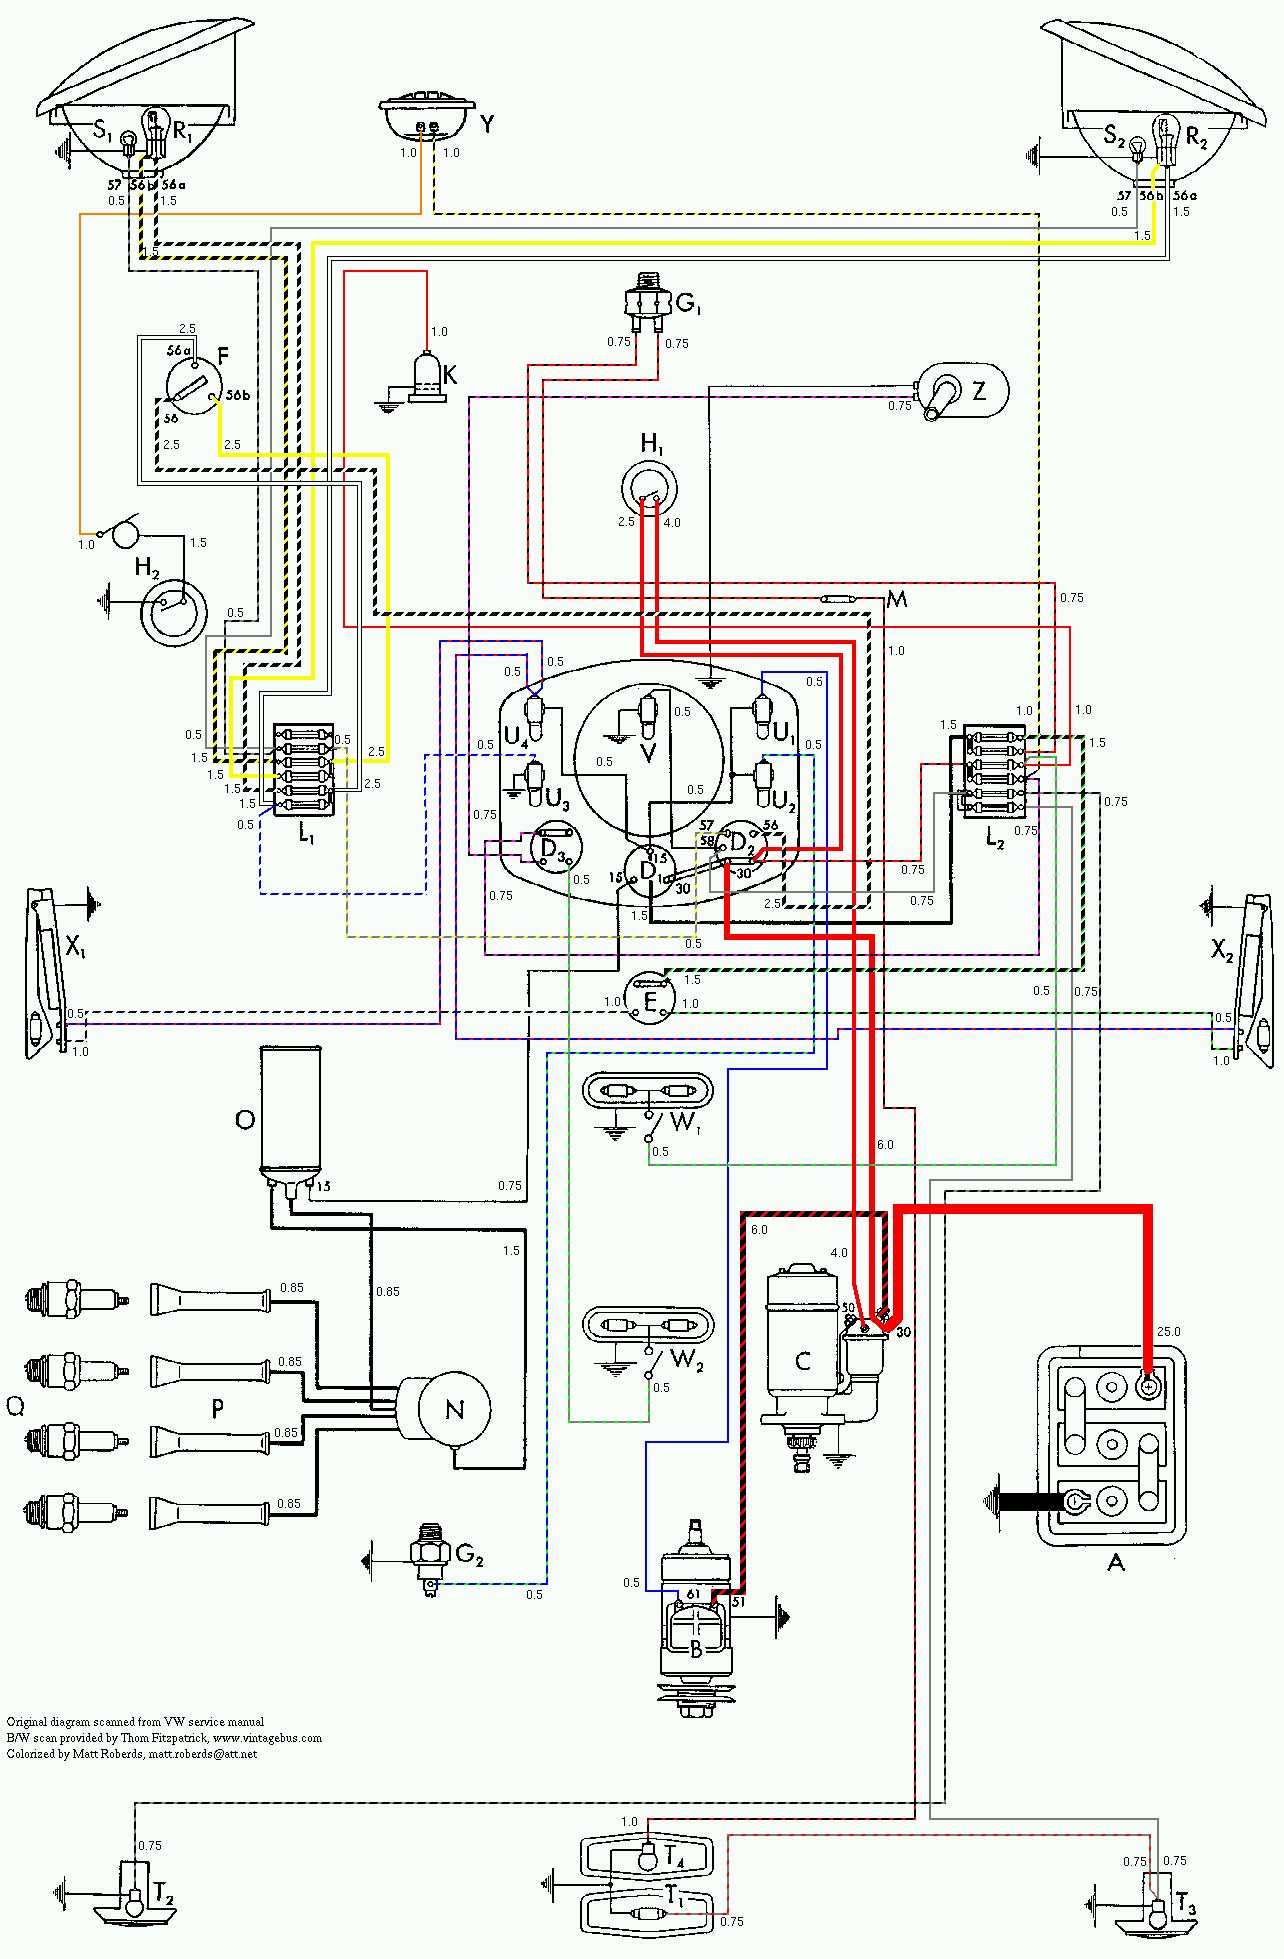 hight resolution of vintagebus com vw bus and other wiring diagrams basic vw wiring diagram